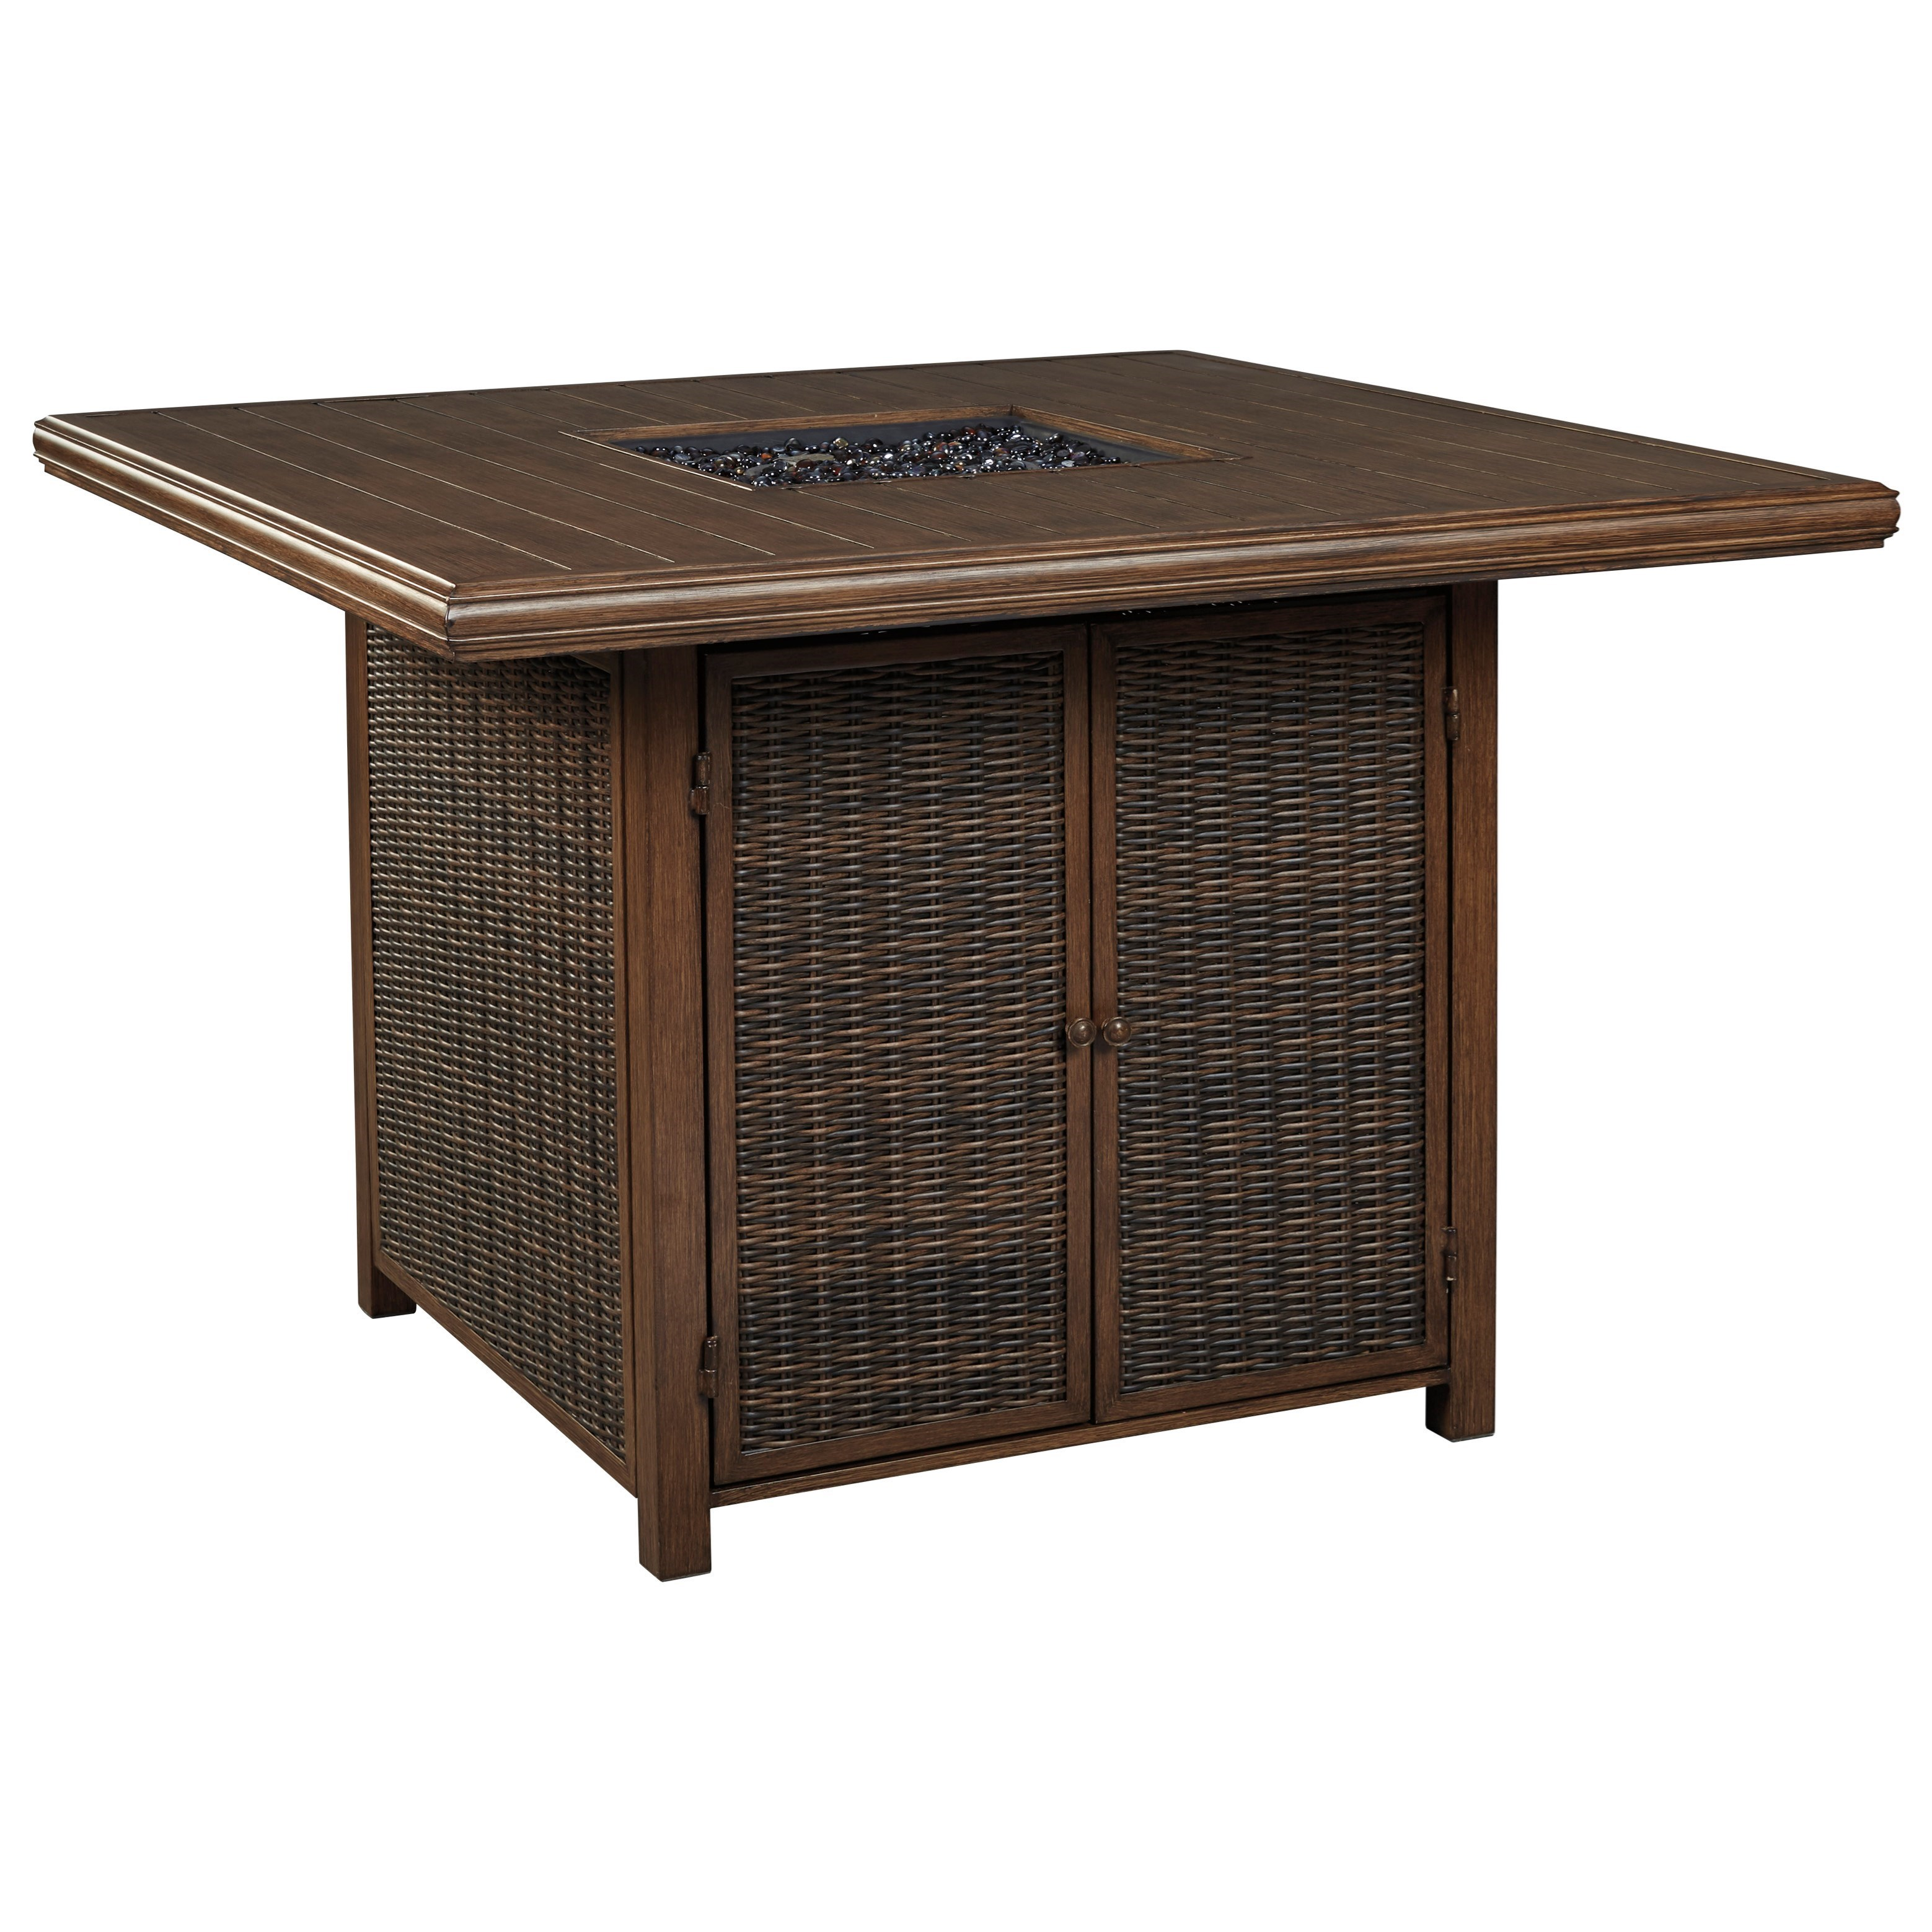 Paradise Trail Square Bar Table with Fire Pit by Signature Design by Ashley at Darvin Furniture